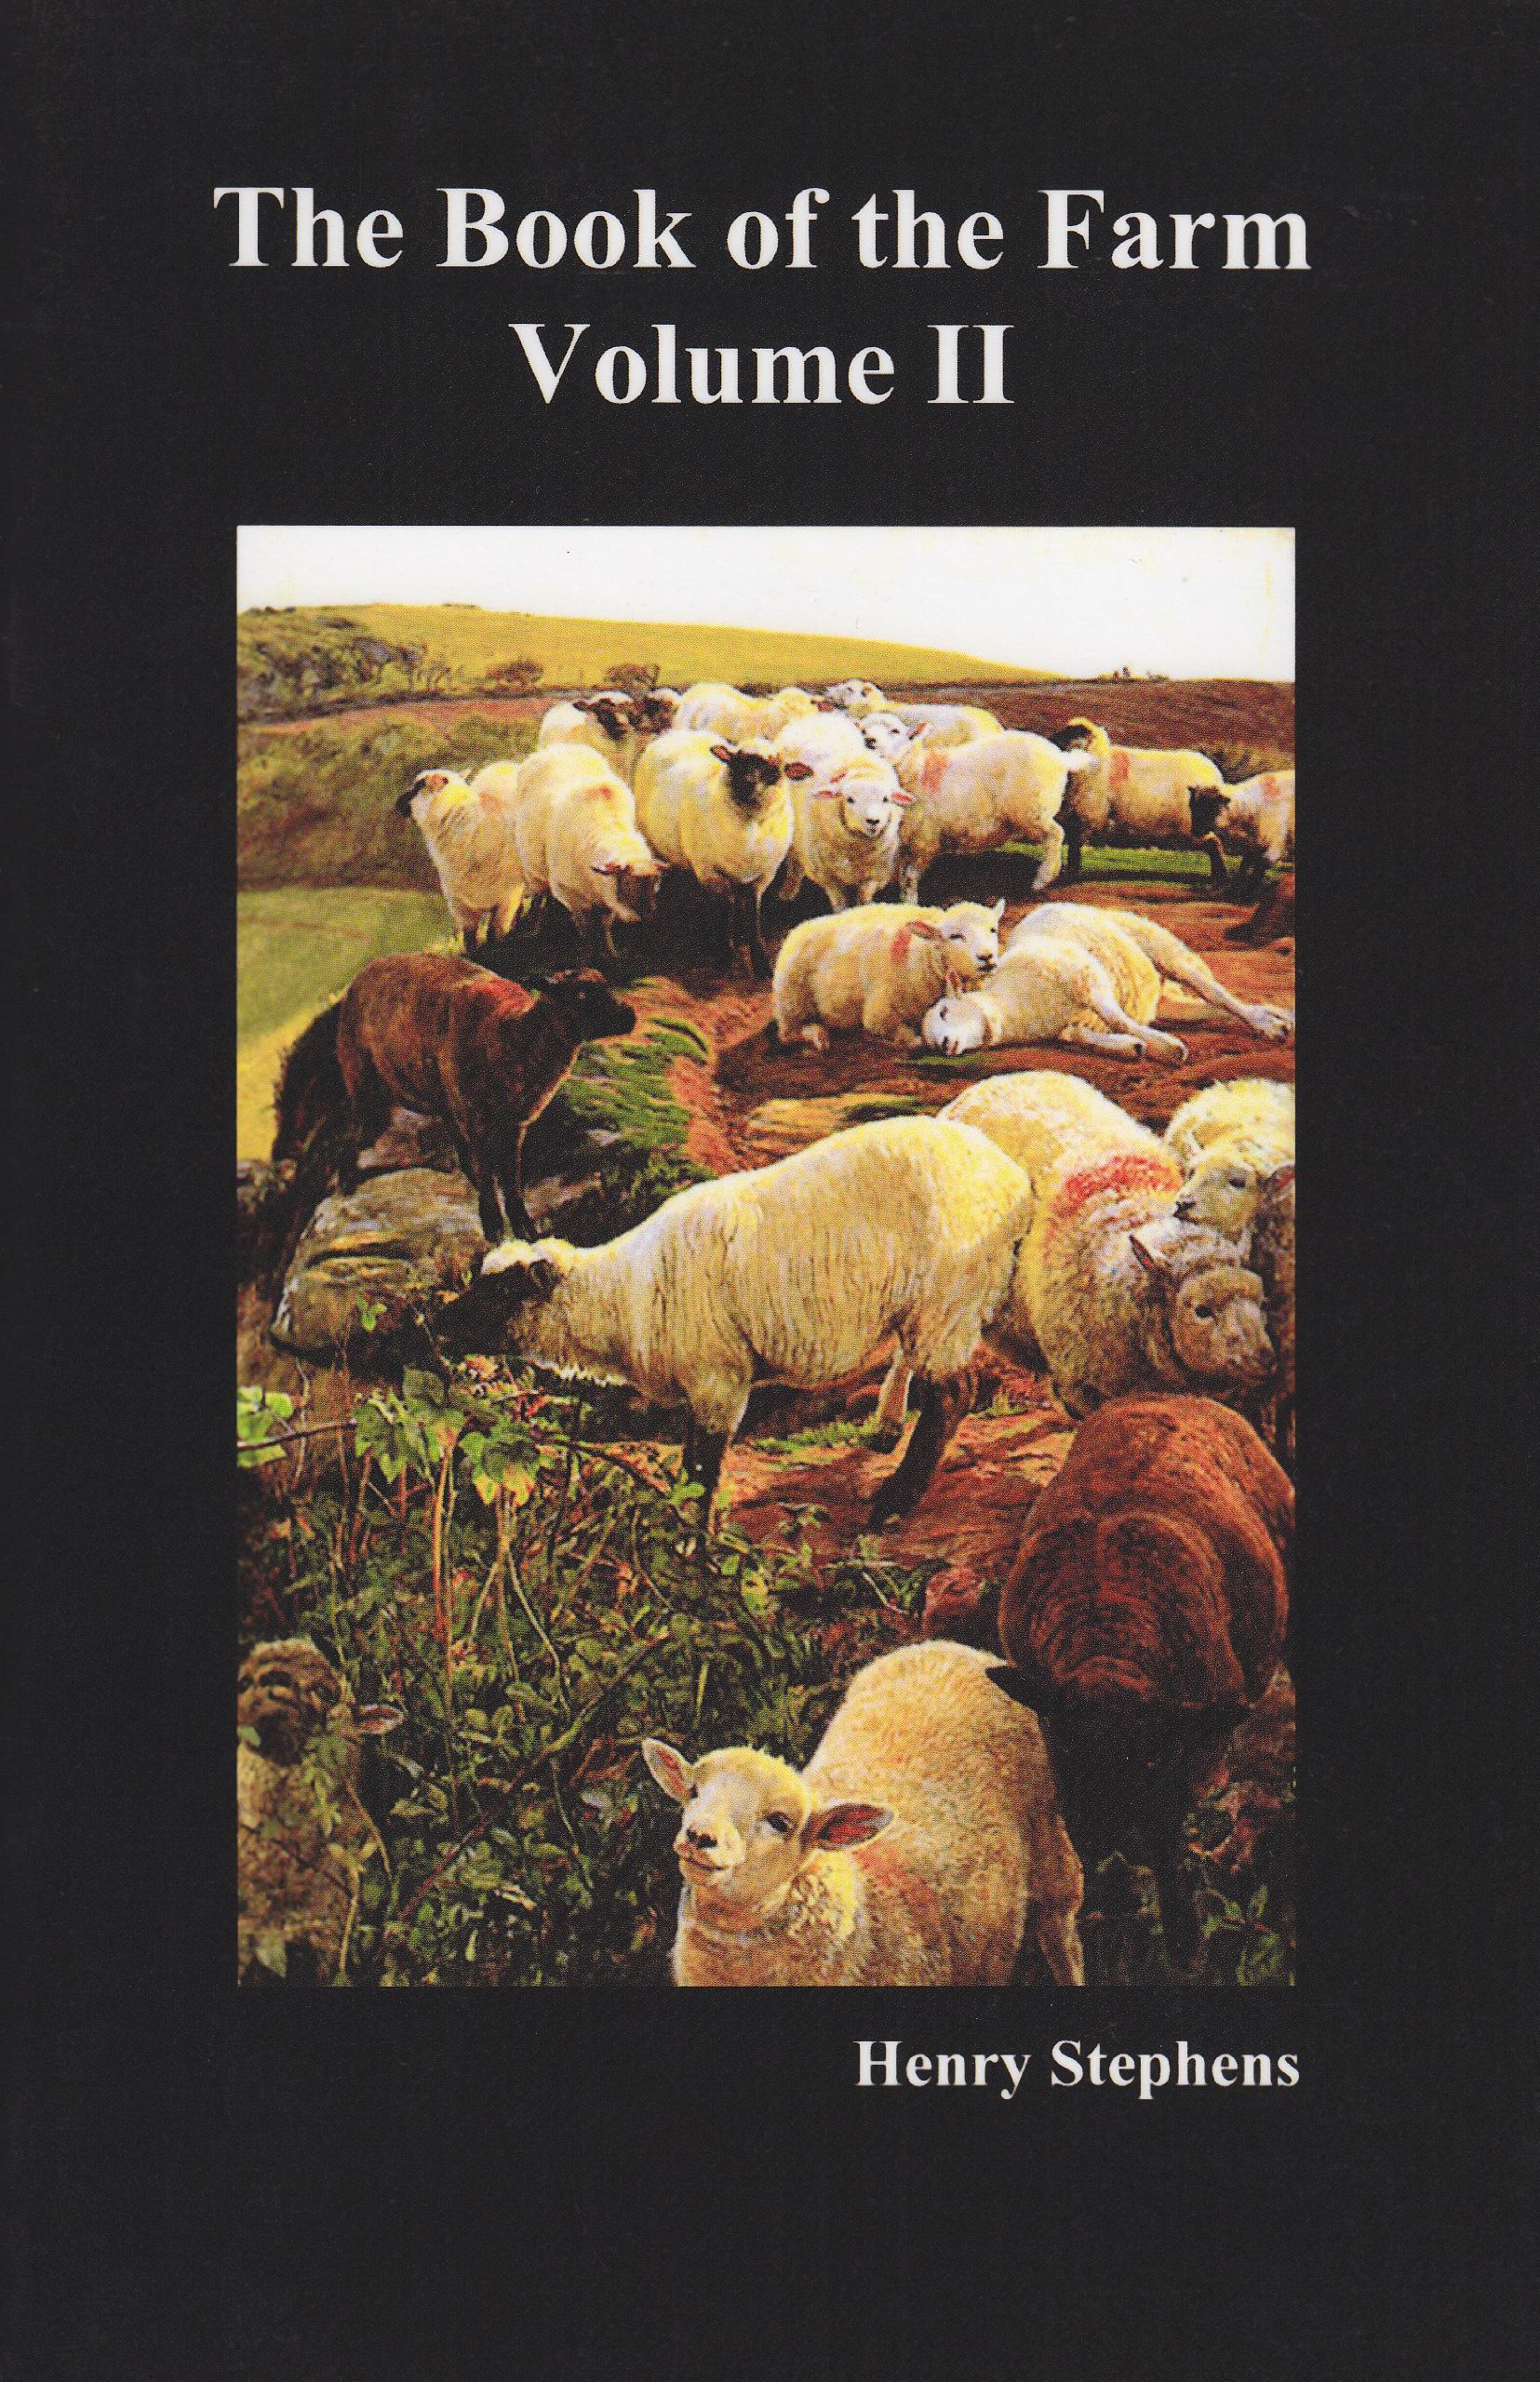 The Book of the Farm. Volume II. (Softcover) pdf